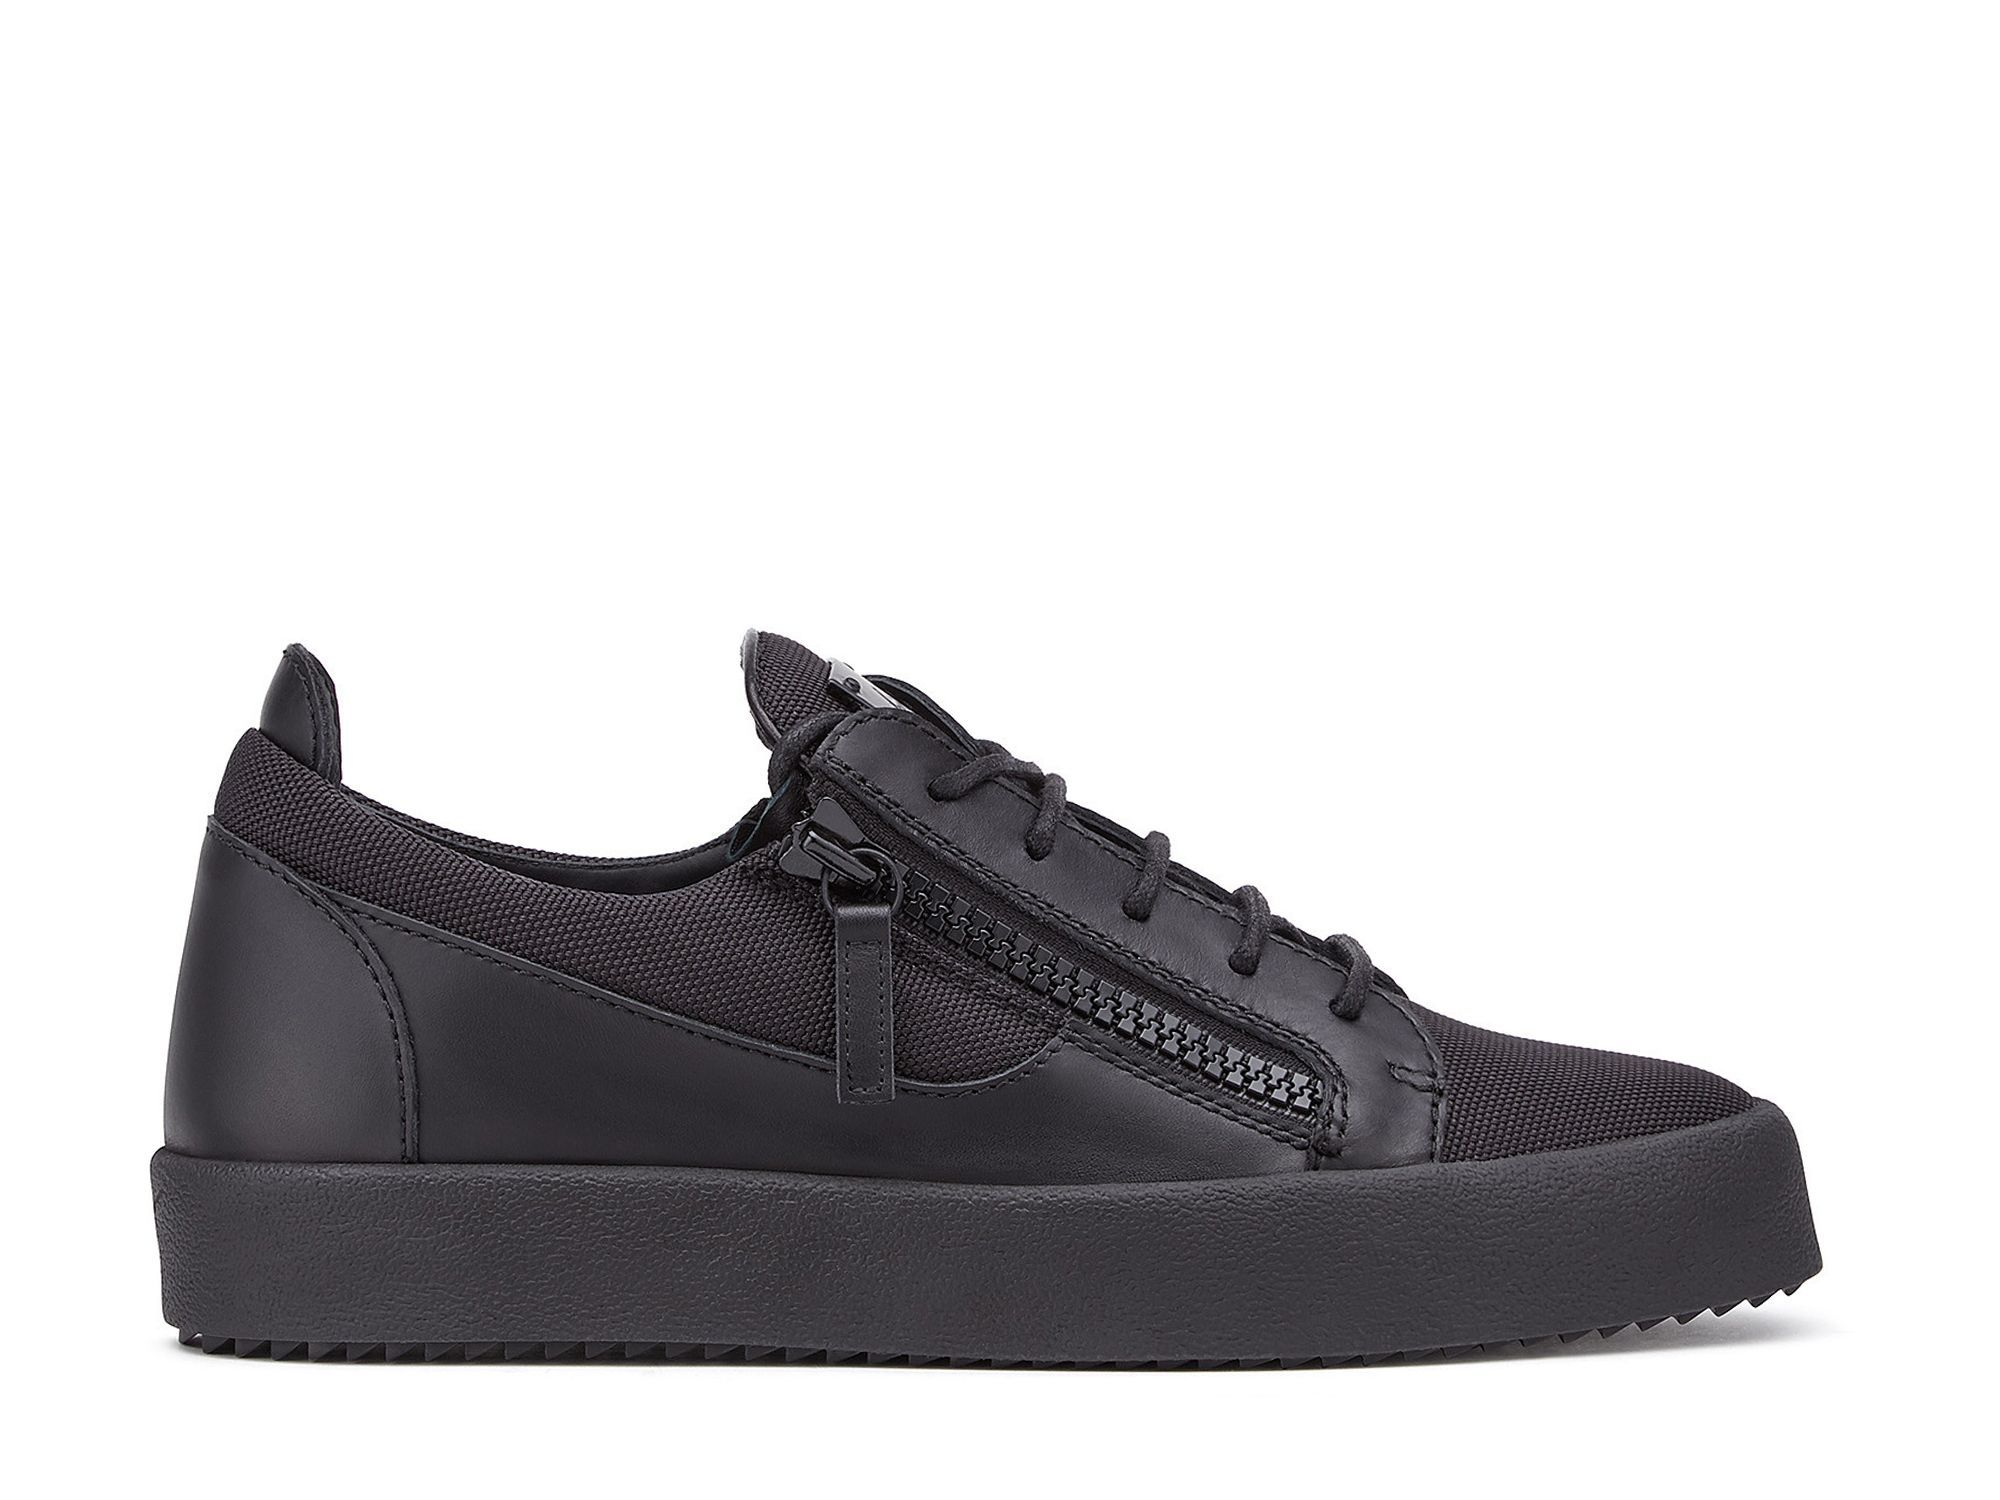 c559ffee31def Sneakers Giuseppe Zanotti - Za May London H1 en cuir et toile noir   sergiorossishoes